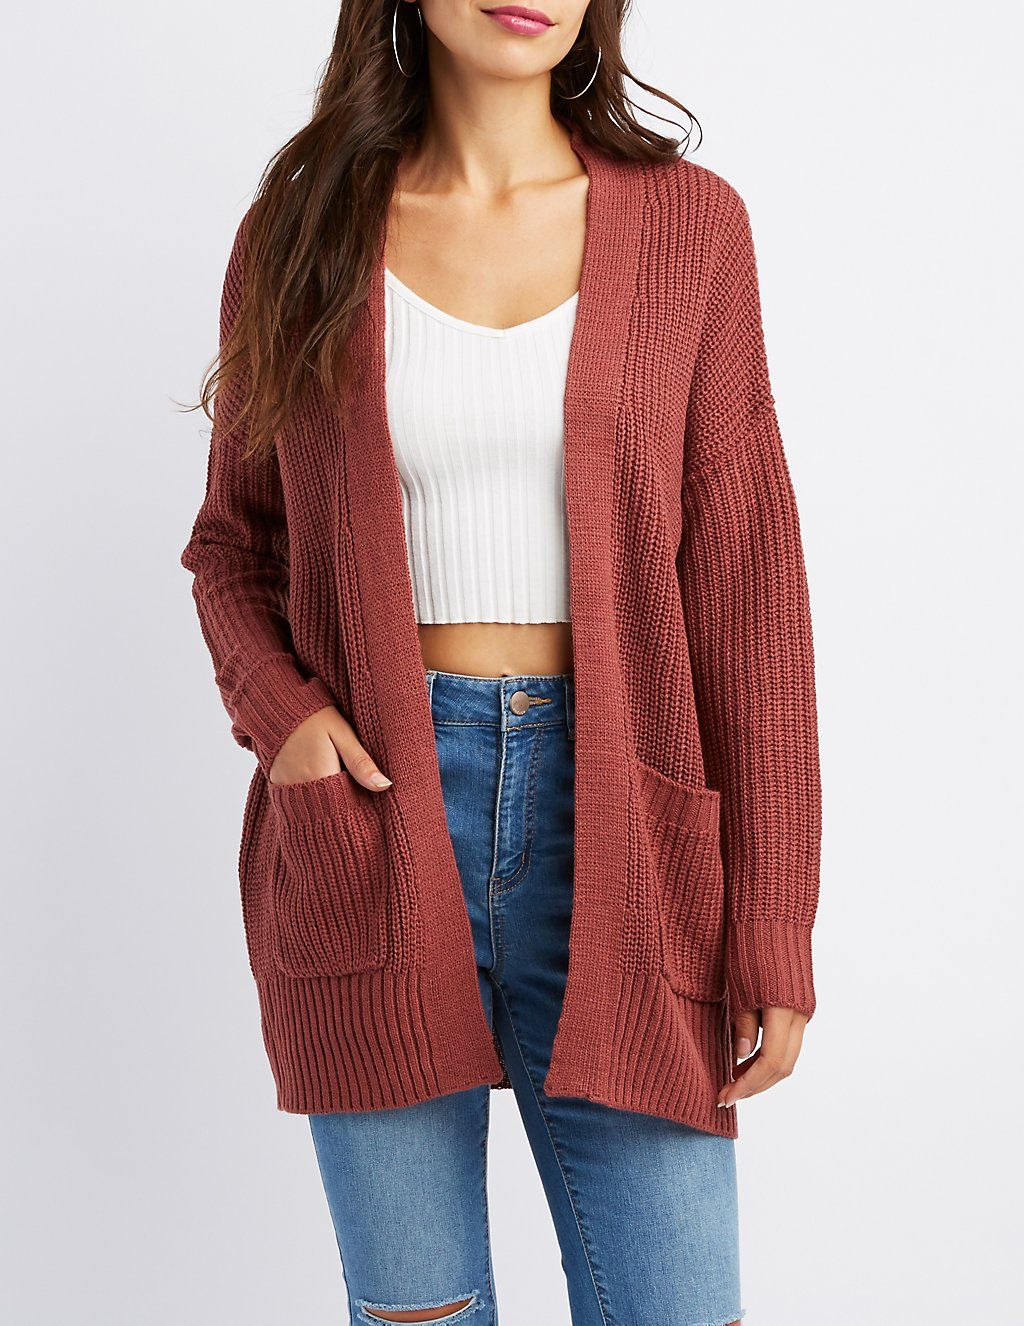 Shaker Stitch Boyfriend Cardigan  f784cd9c1